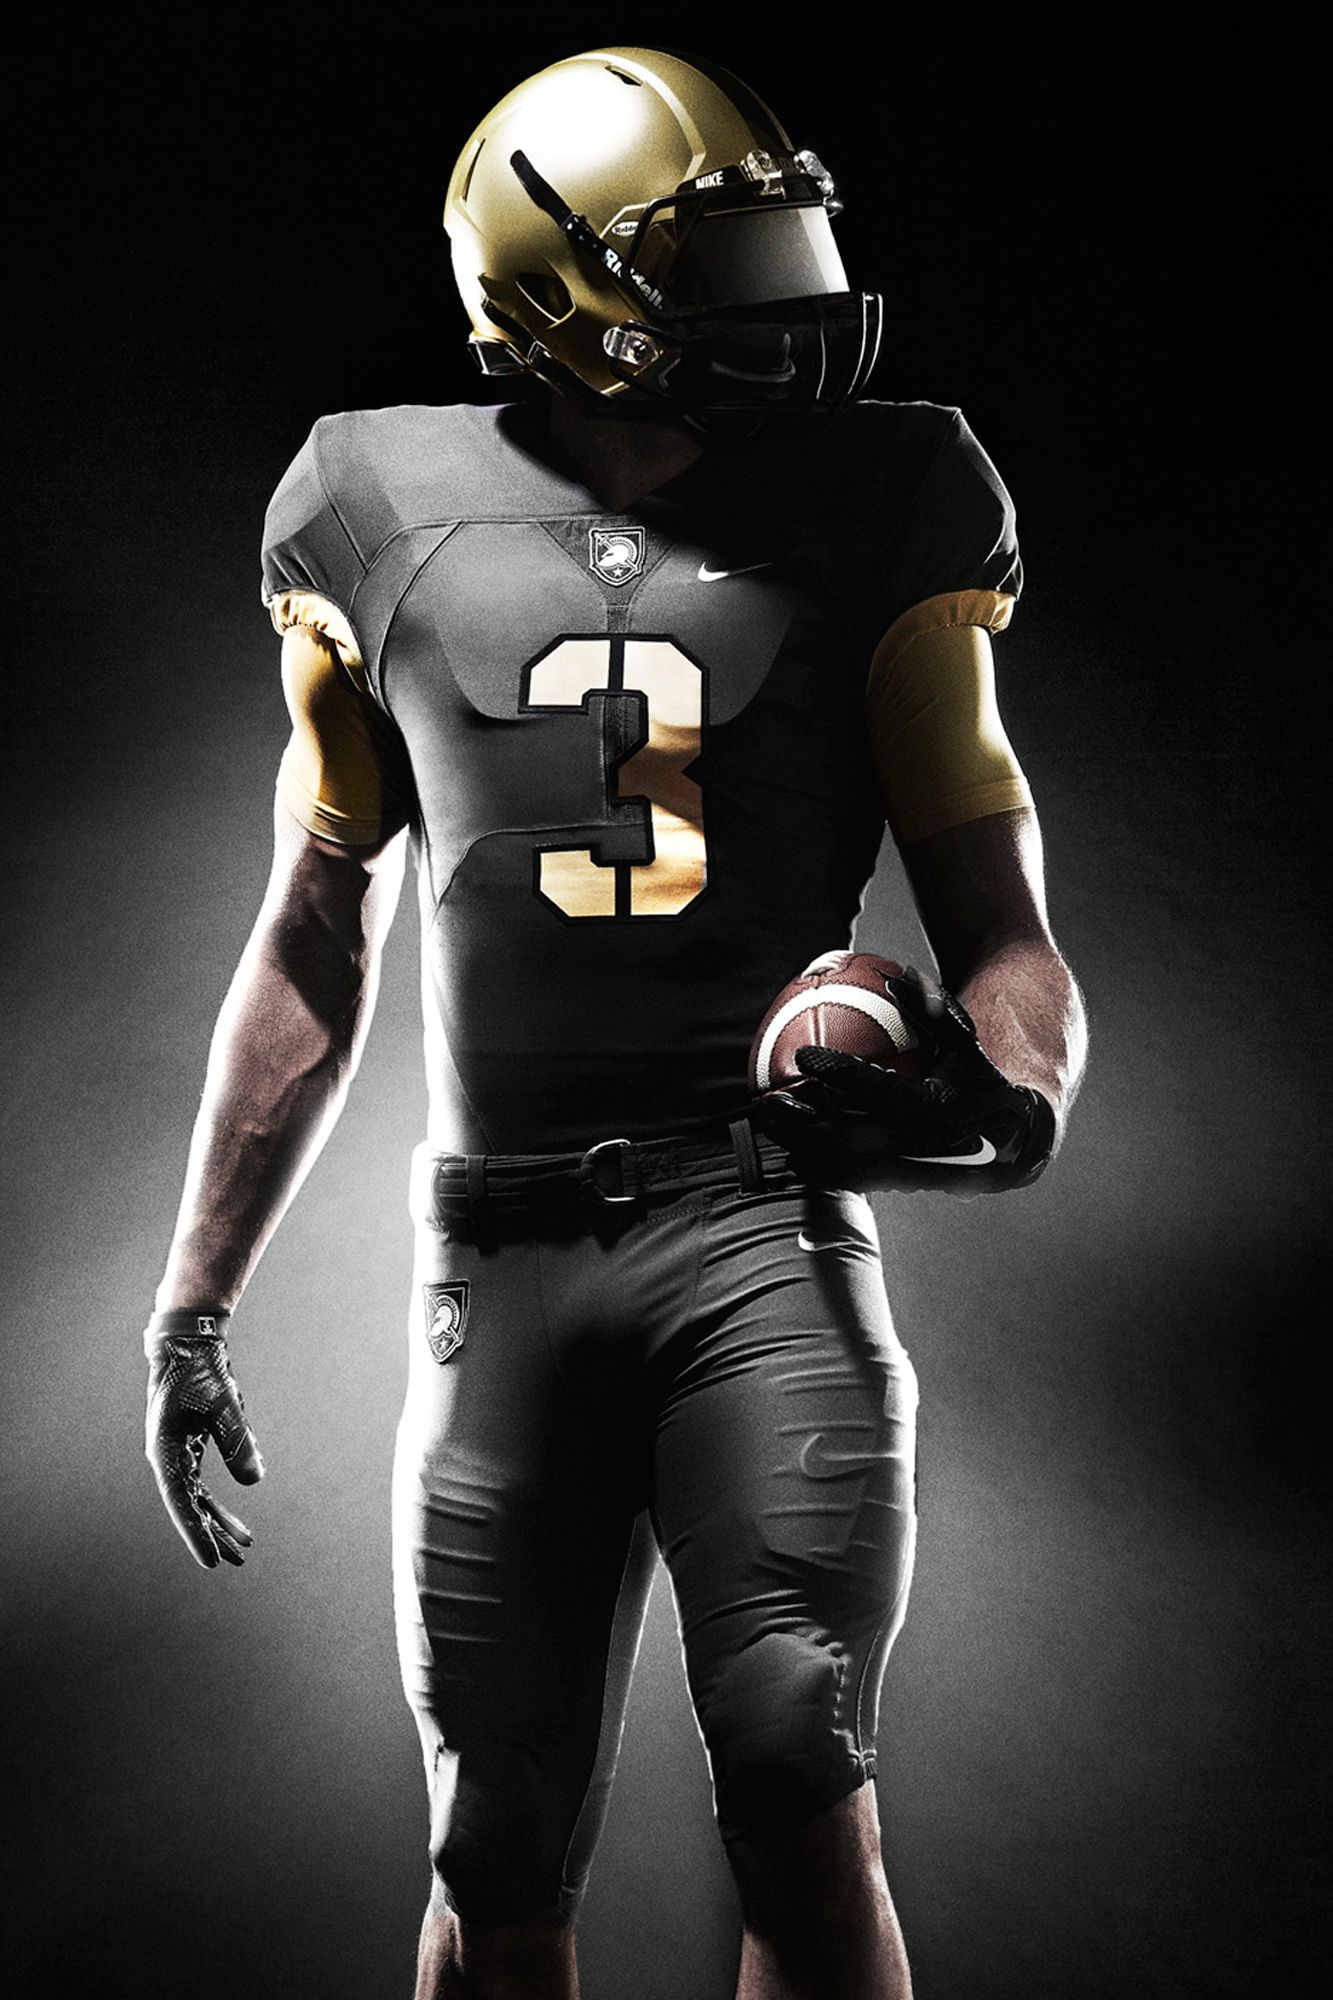 2015 Army West Point Uniforms By Nike Football Army Navy Football Navy Football Uniforms Navy Football